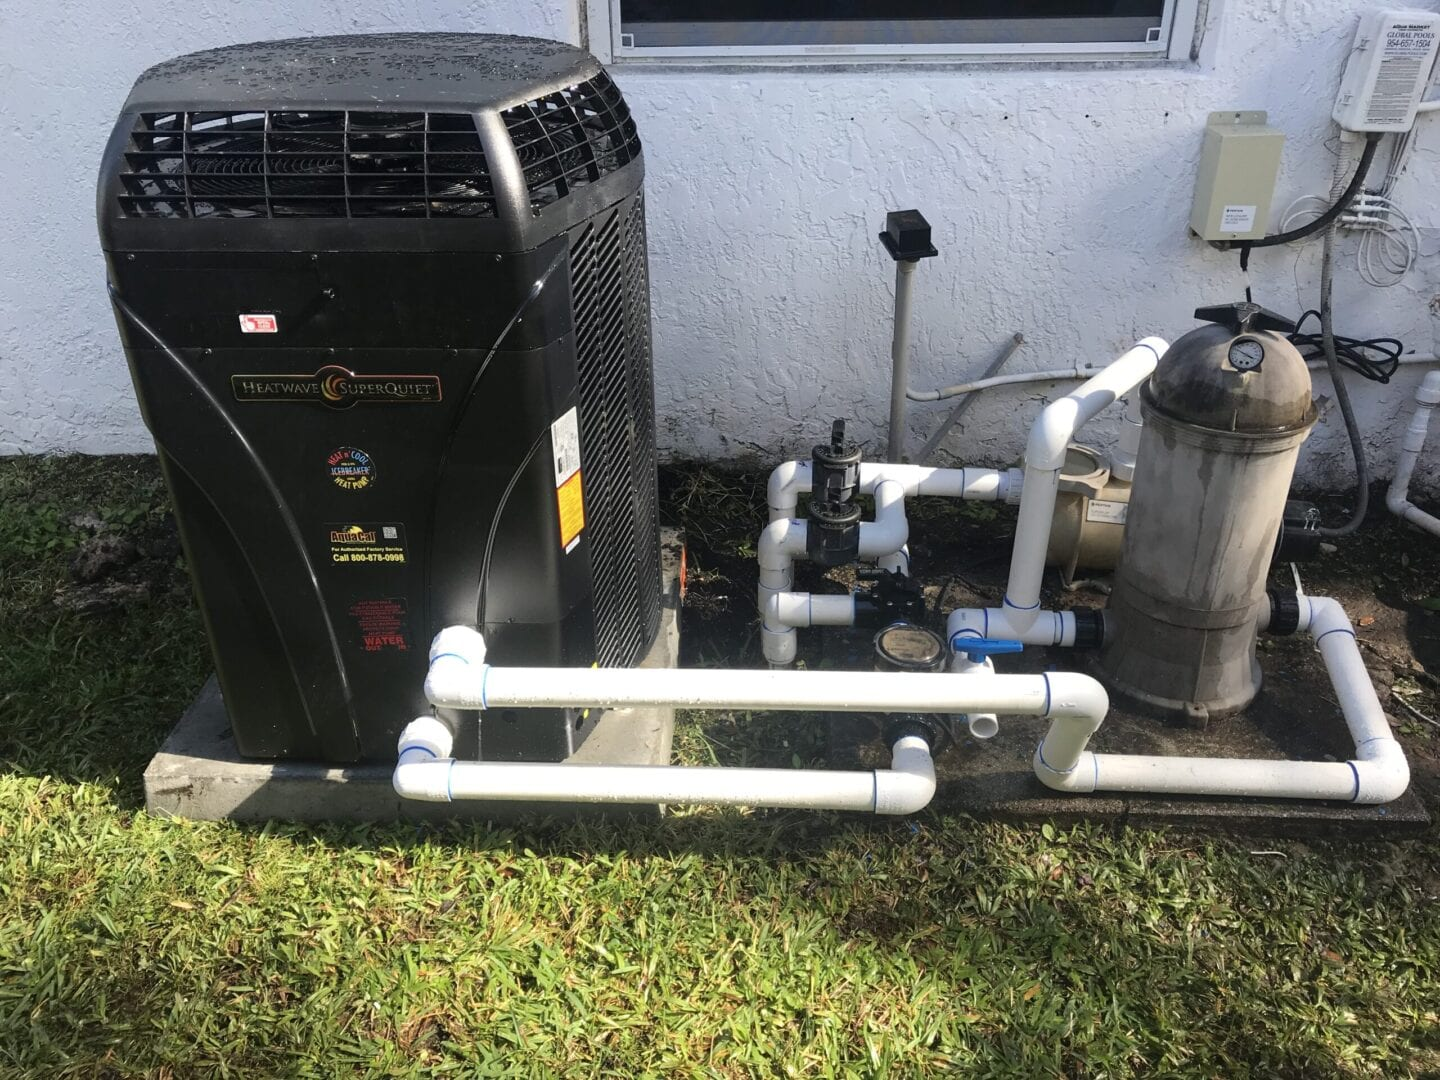 AquaCal heat pump with pipes